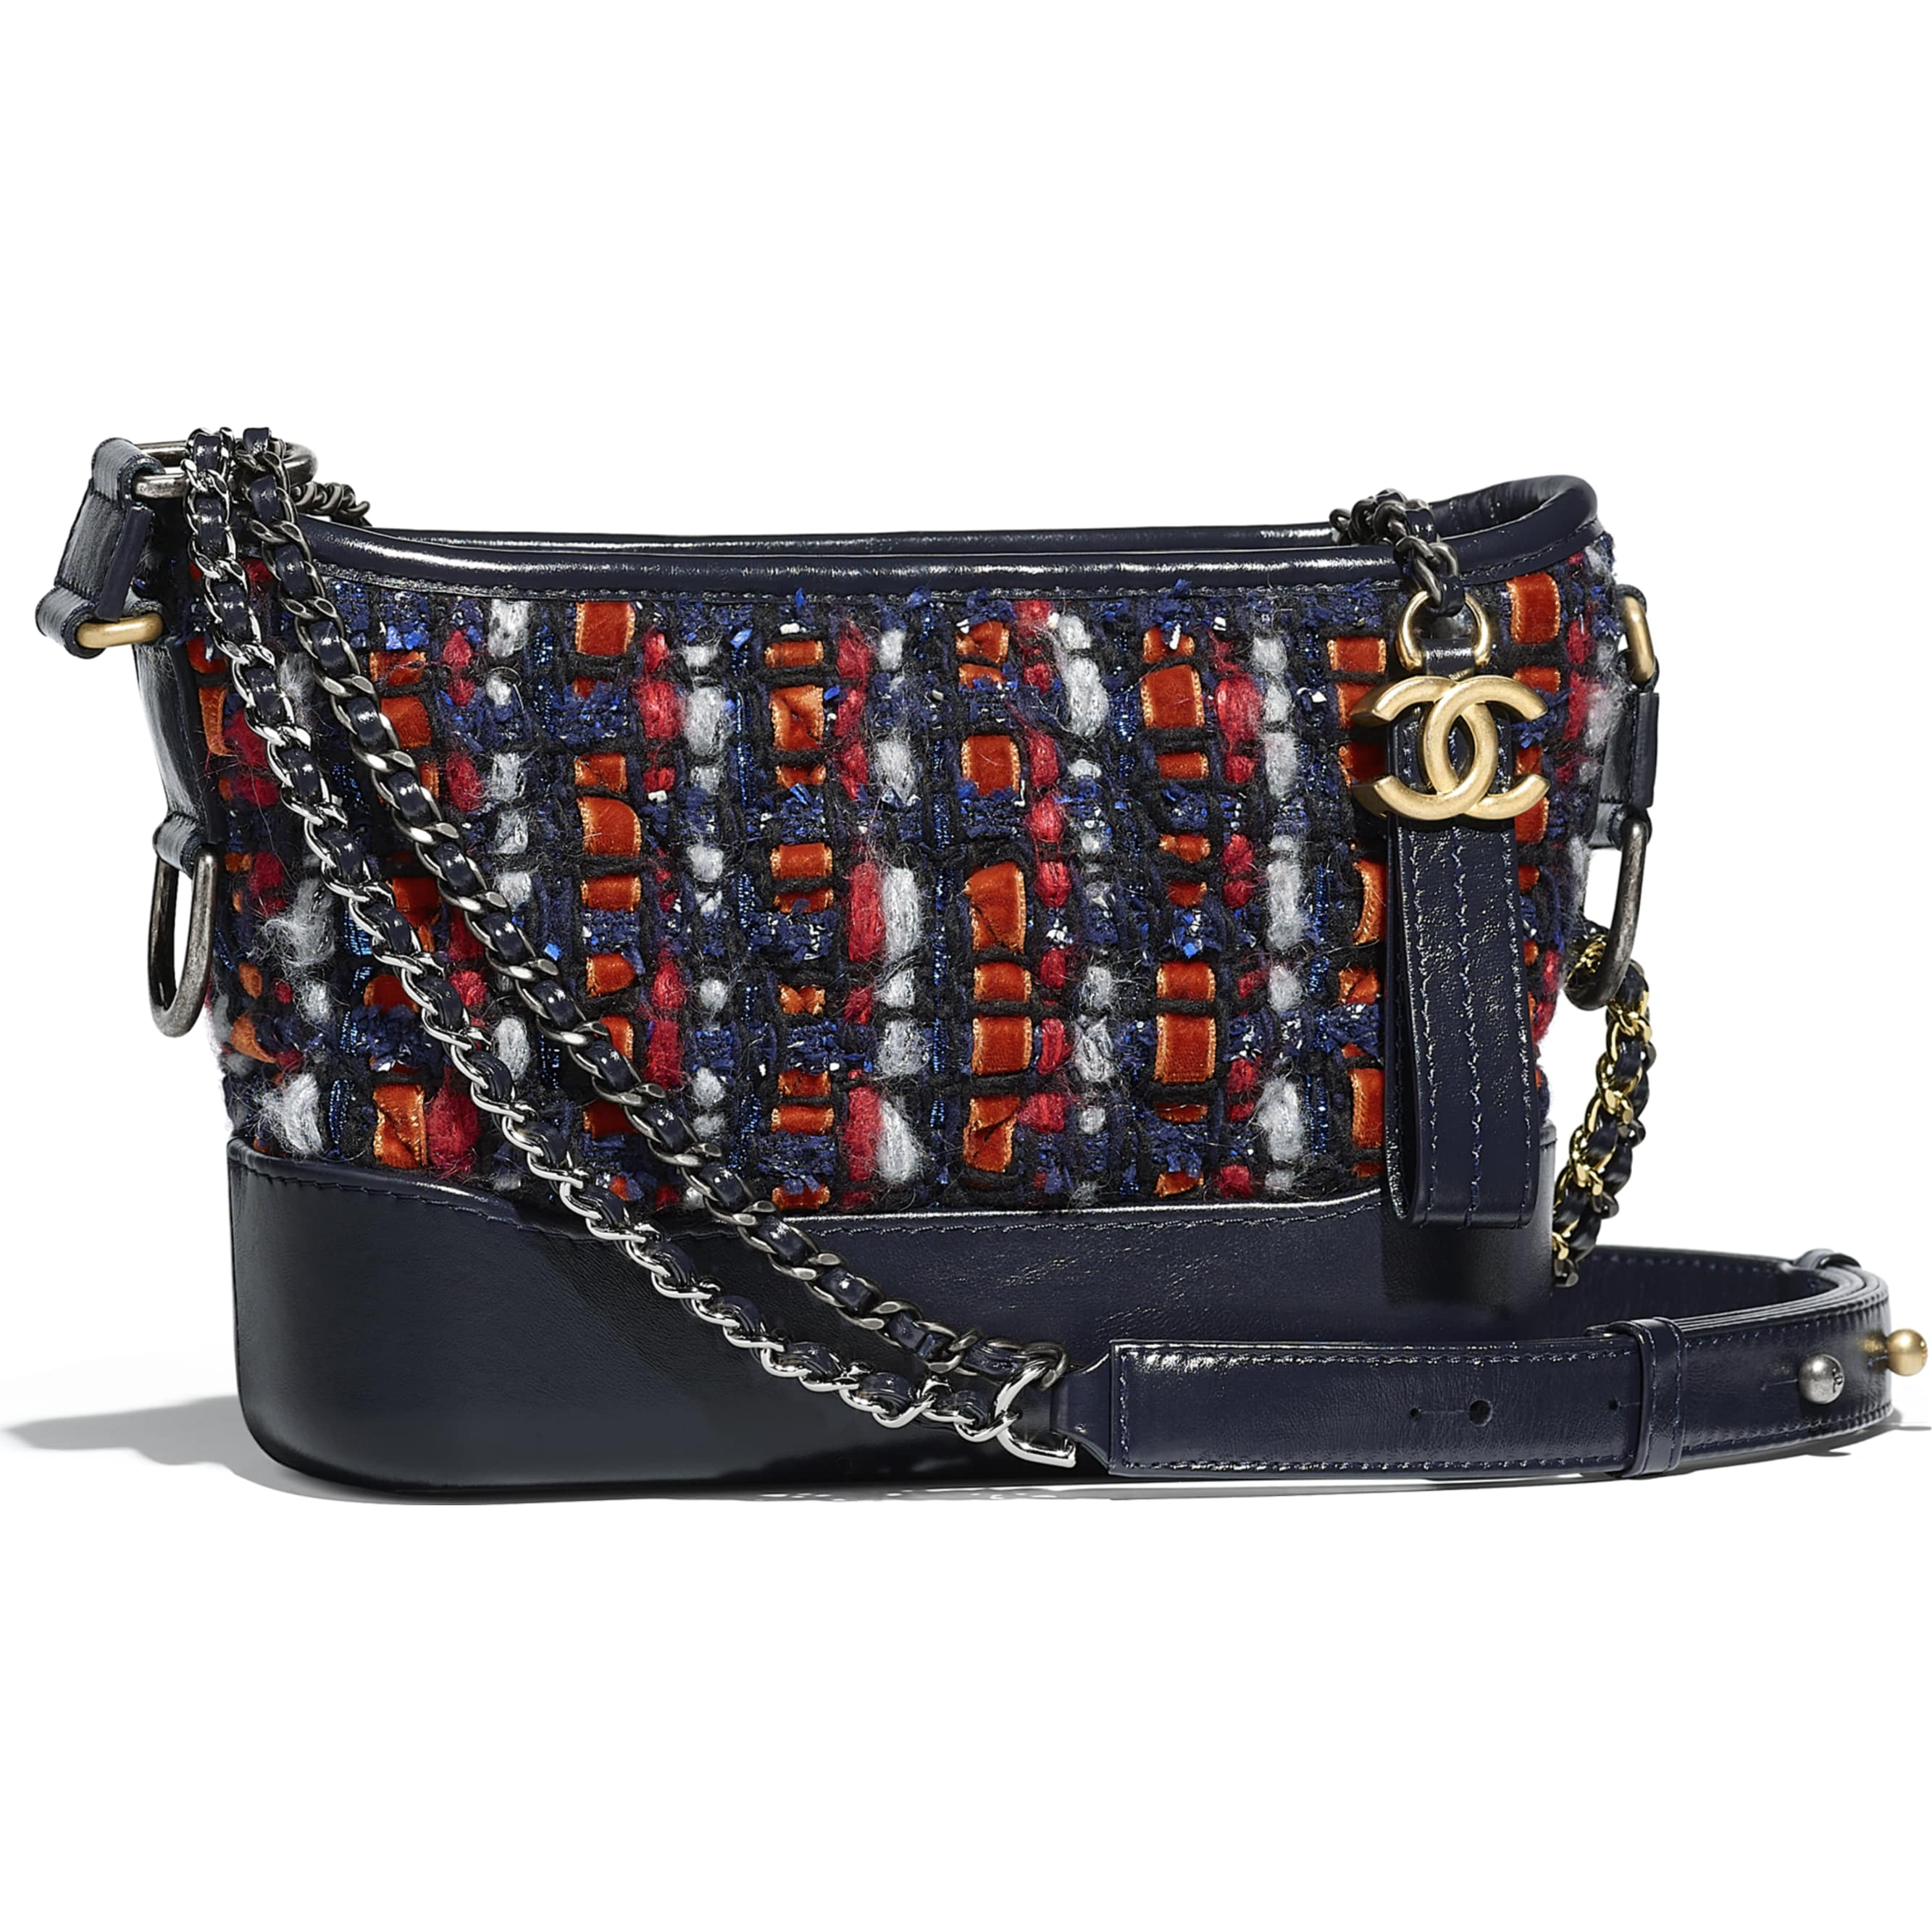 95f5f0f518 chanel-s-gabrielle-small-hobo-bag-navy-blue-orange-red-white-tweed ...